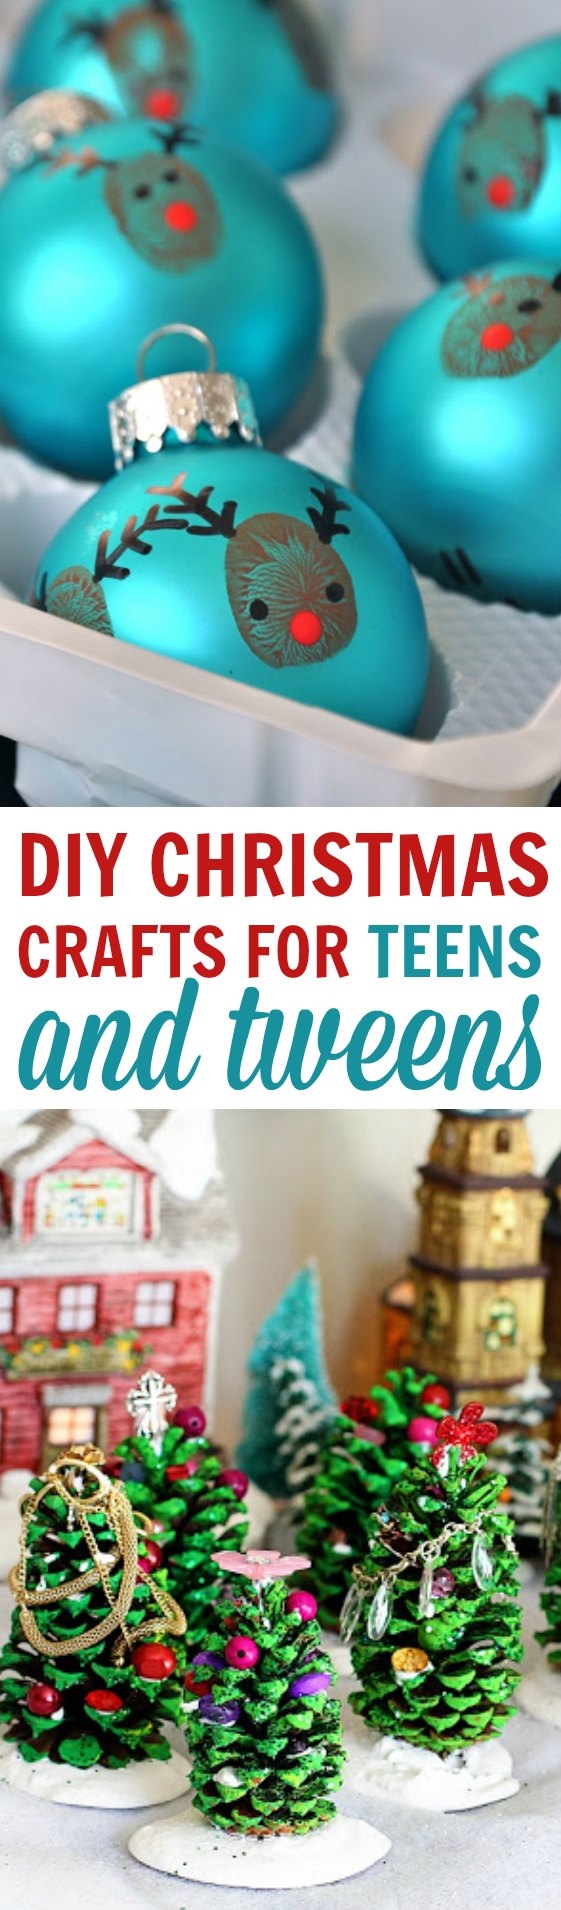 DIY Christmas Crafts For Teens and Tweens - A Little Craft In Your Day